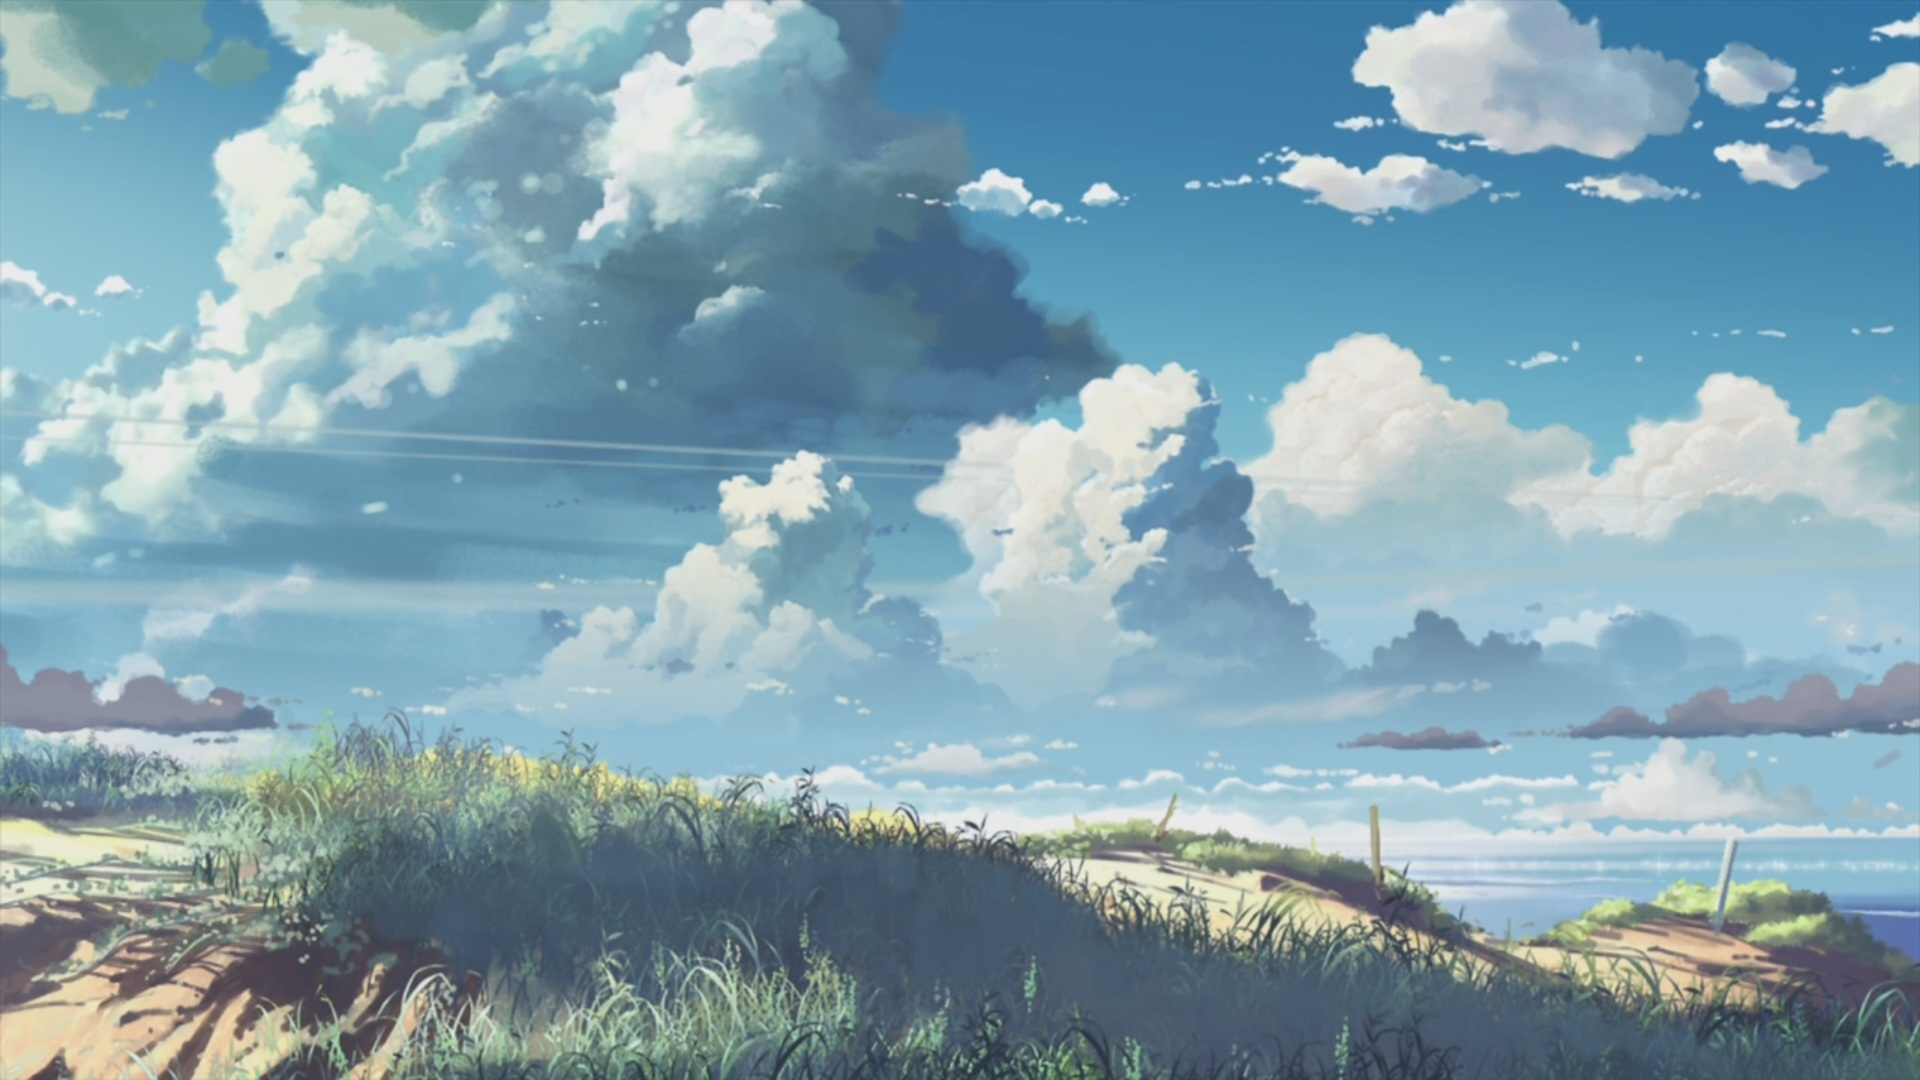 Anime landscape wallpaper hd pixelstalk net - 2d nature wallpapers ...